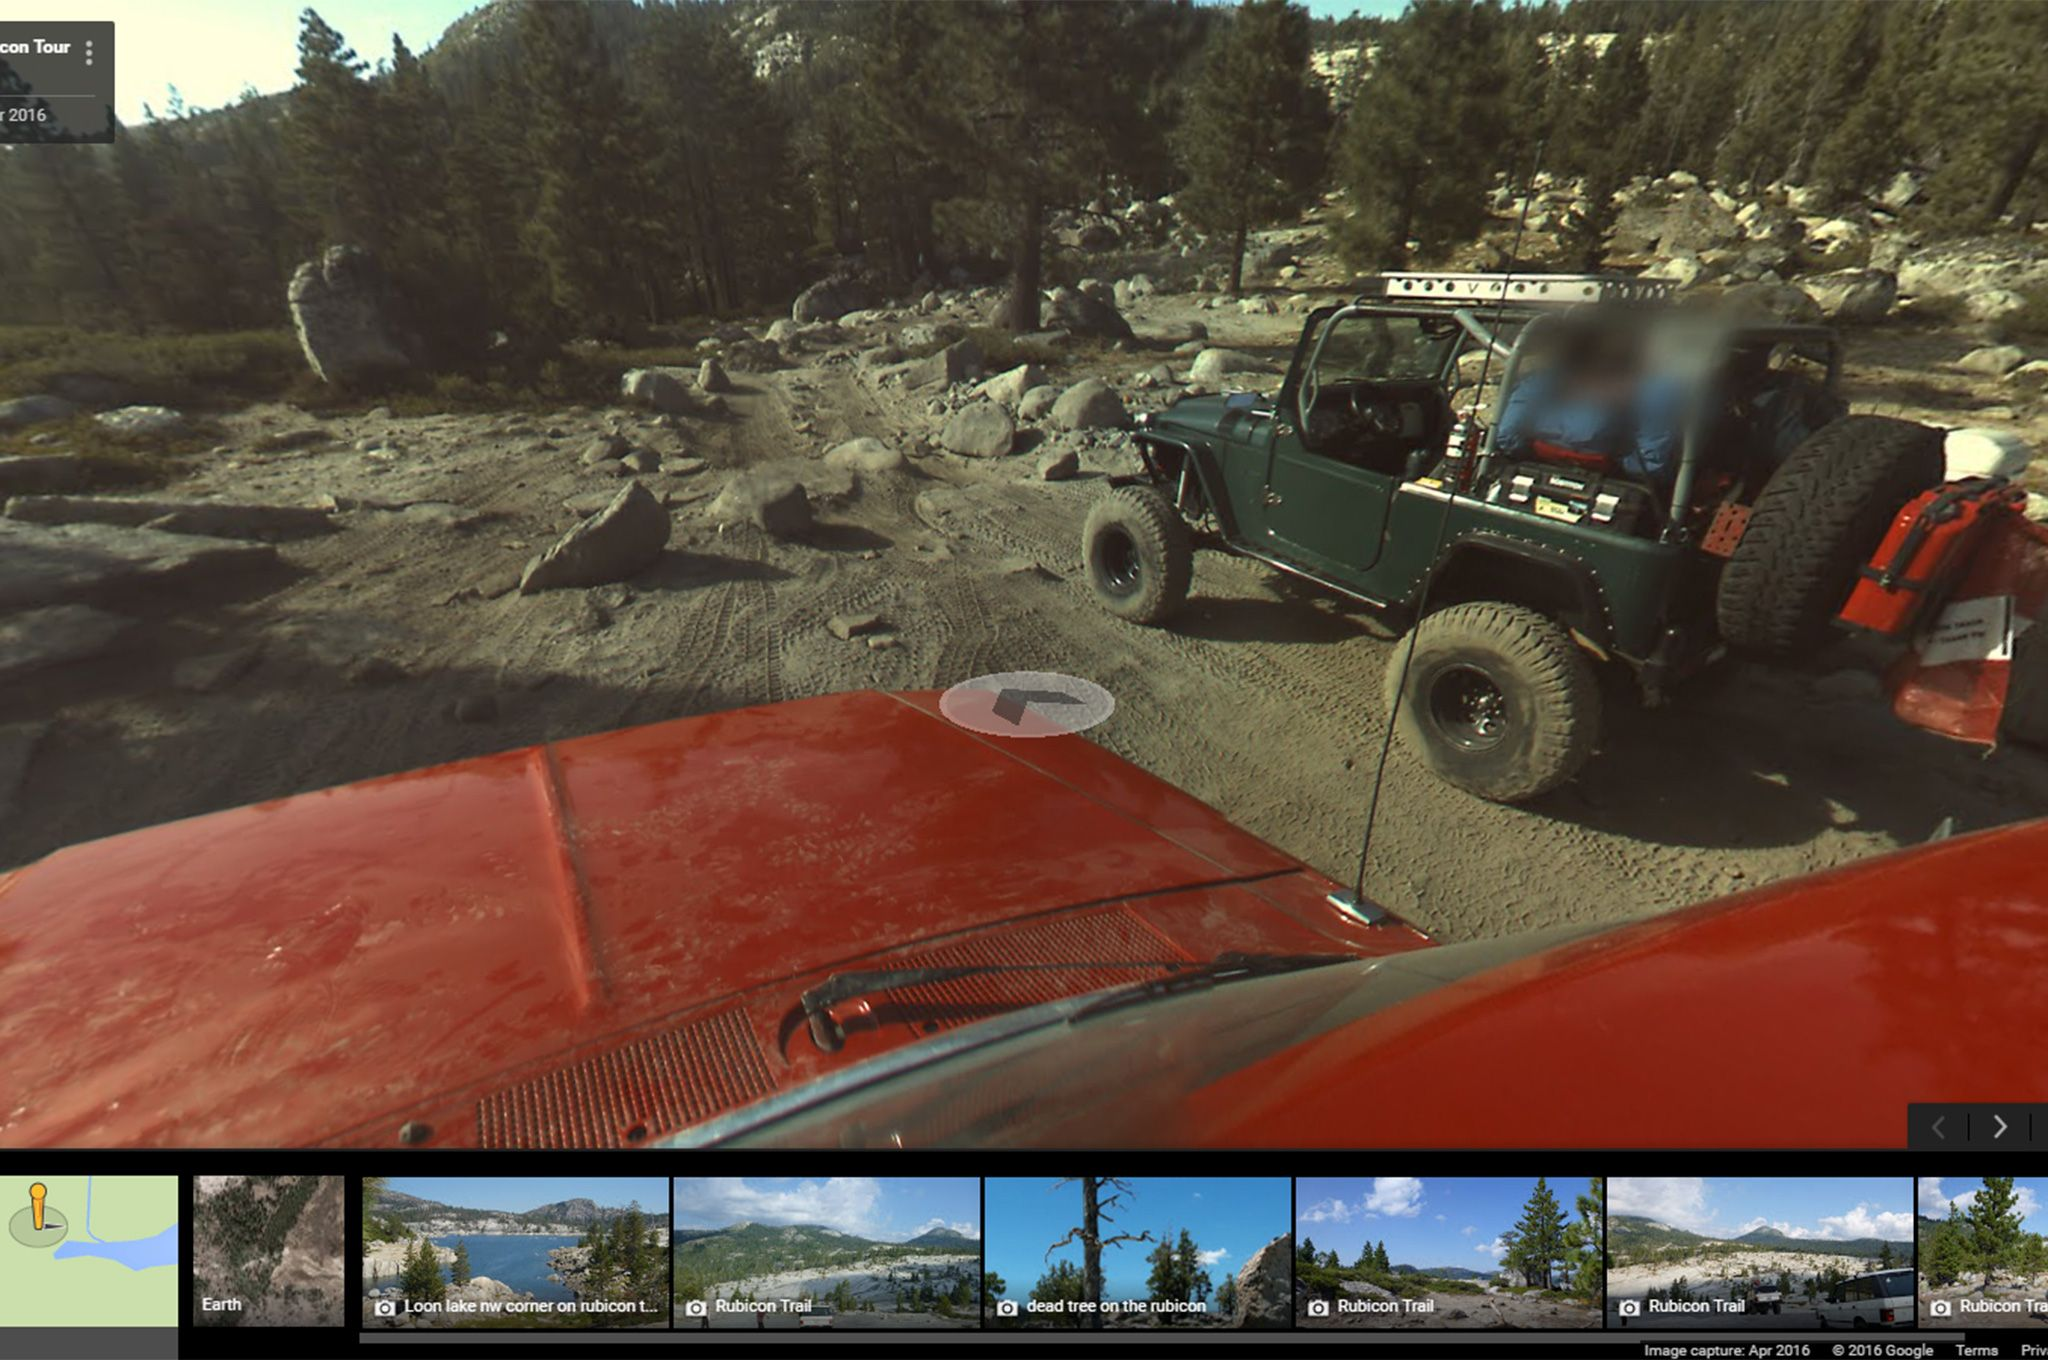 Google Street View Adds the Wild and Rocky Rubicon Trail ... on google street address location, google 360 street view, google earth live view, google home view, google street view program, google world street view, google earth 360 view, google street view in europe, google earth ukiah ca, google street view in the united states, google earth house view, google earth real time view, google mapquest street view, google earth zoom in, google earth live satellite maps, google street view enter address, google street view in africa, google earth view maps, google earth united states,